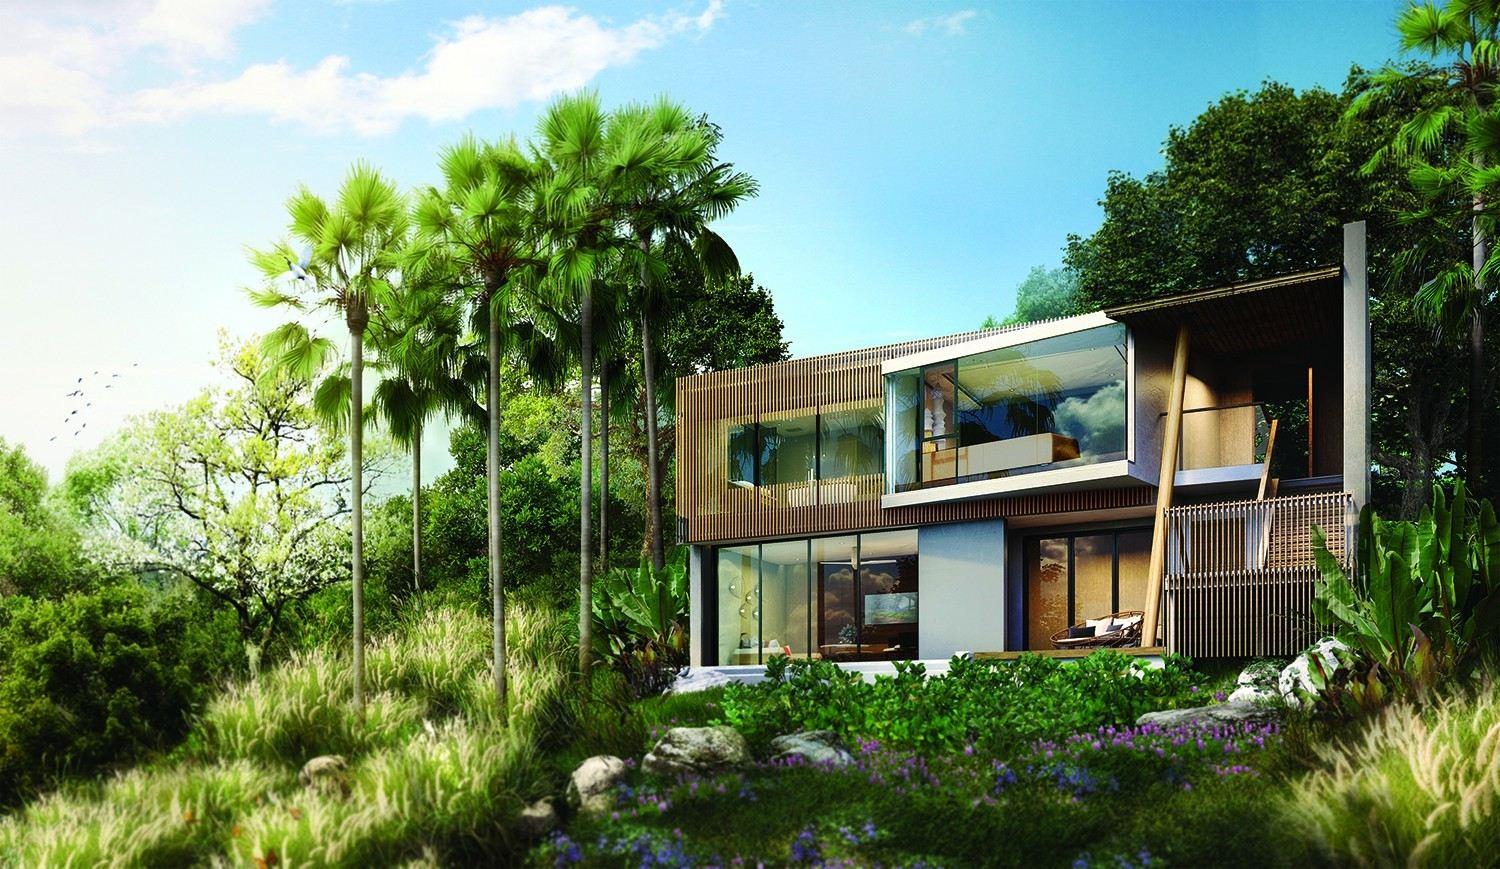 APEX launch Phuket's most exclusive address | The Thaiger